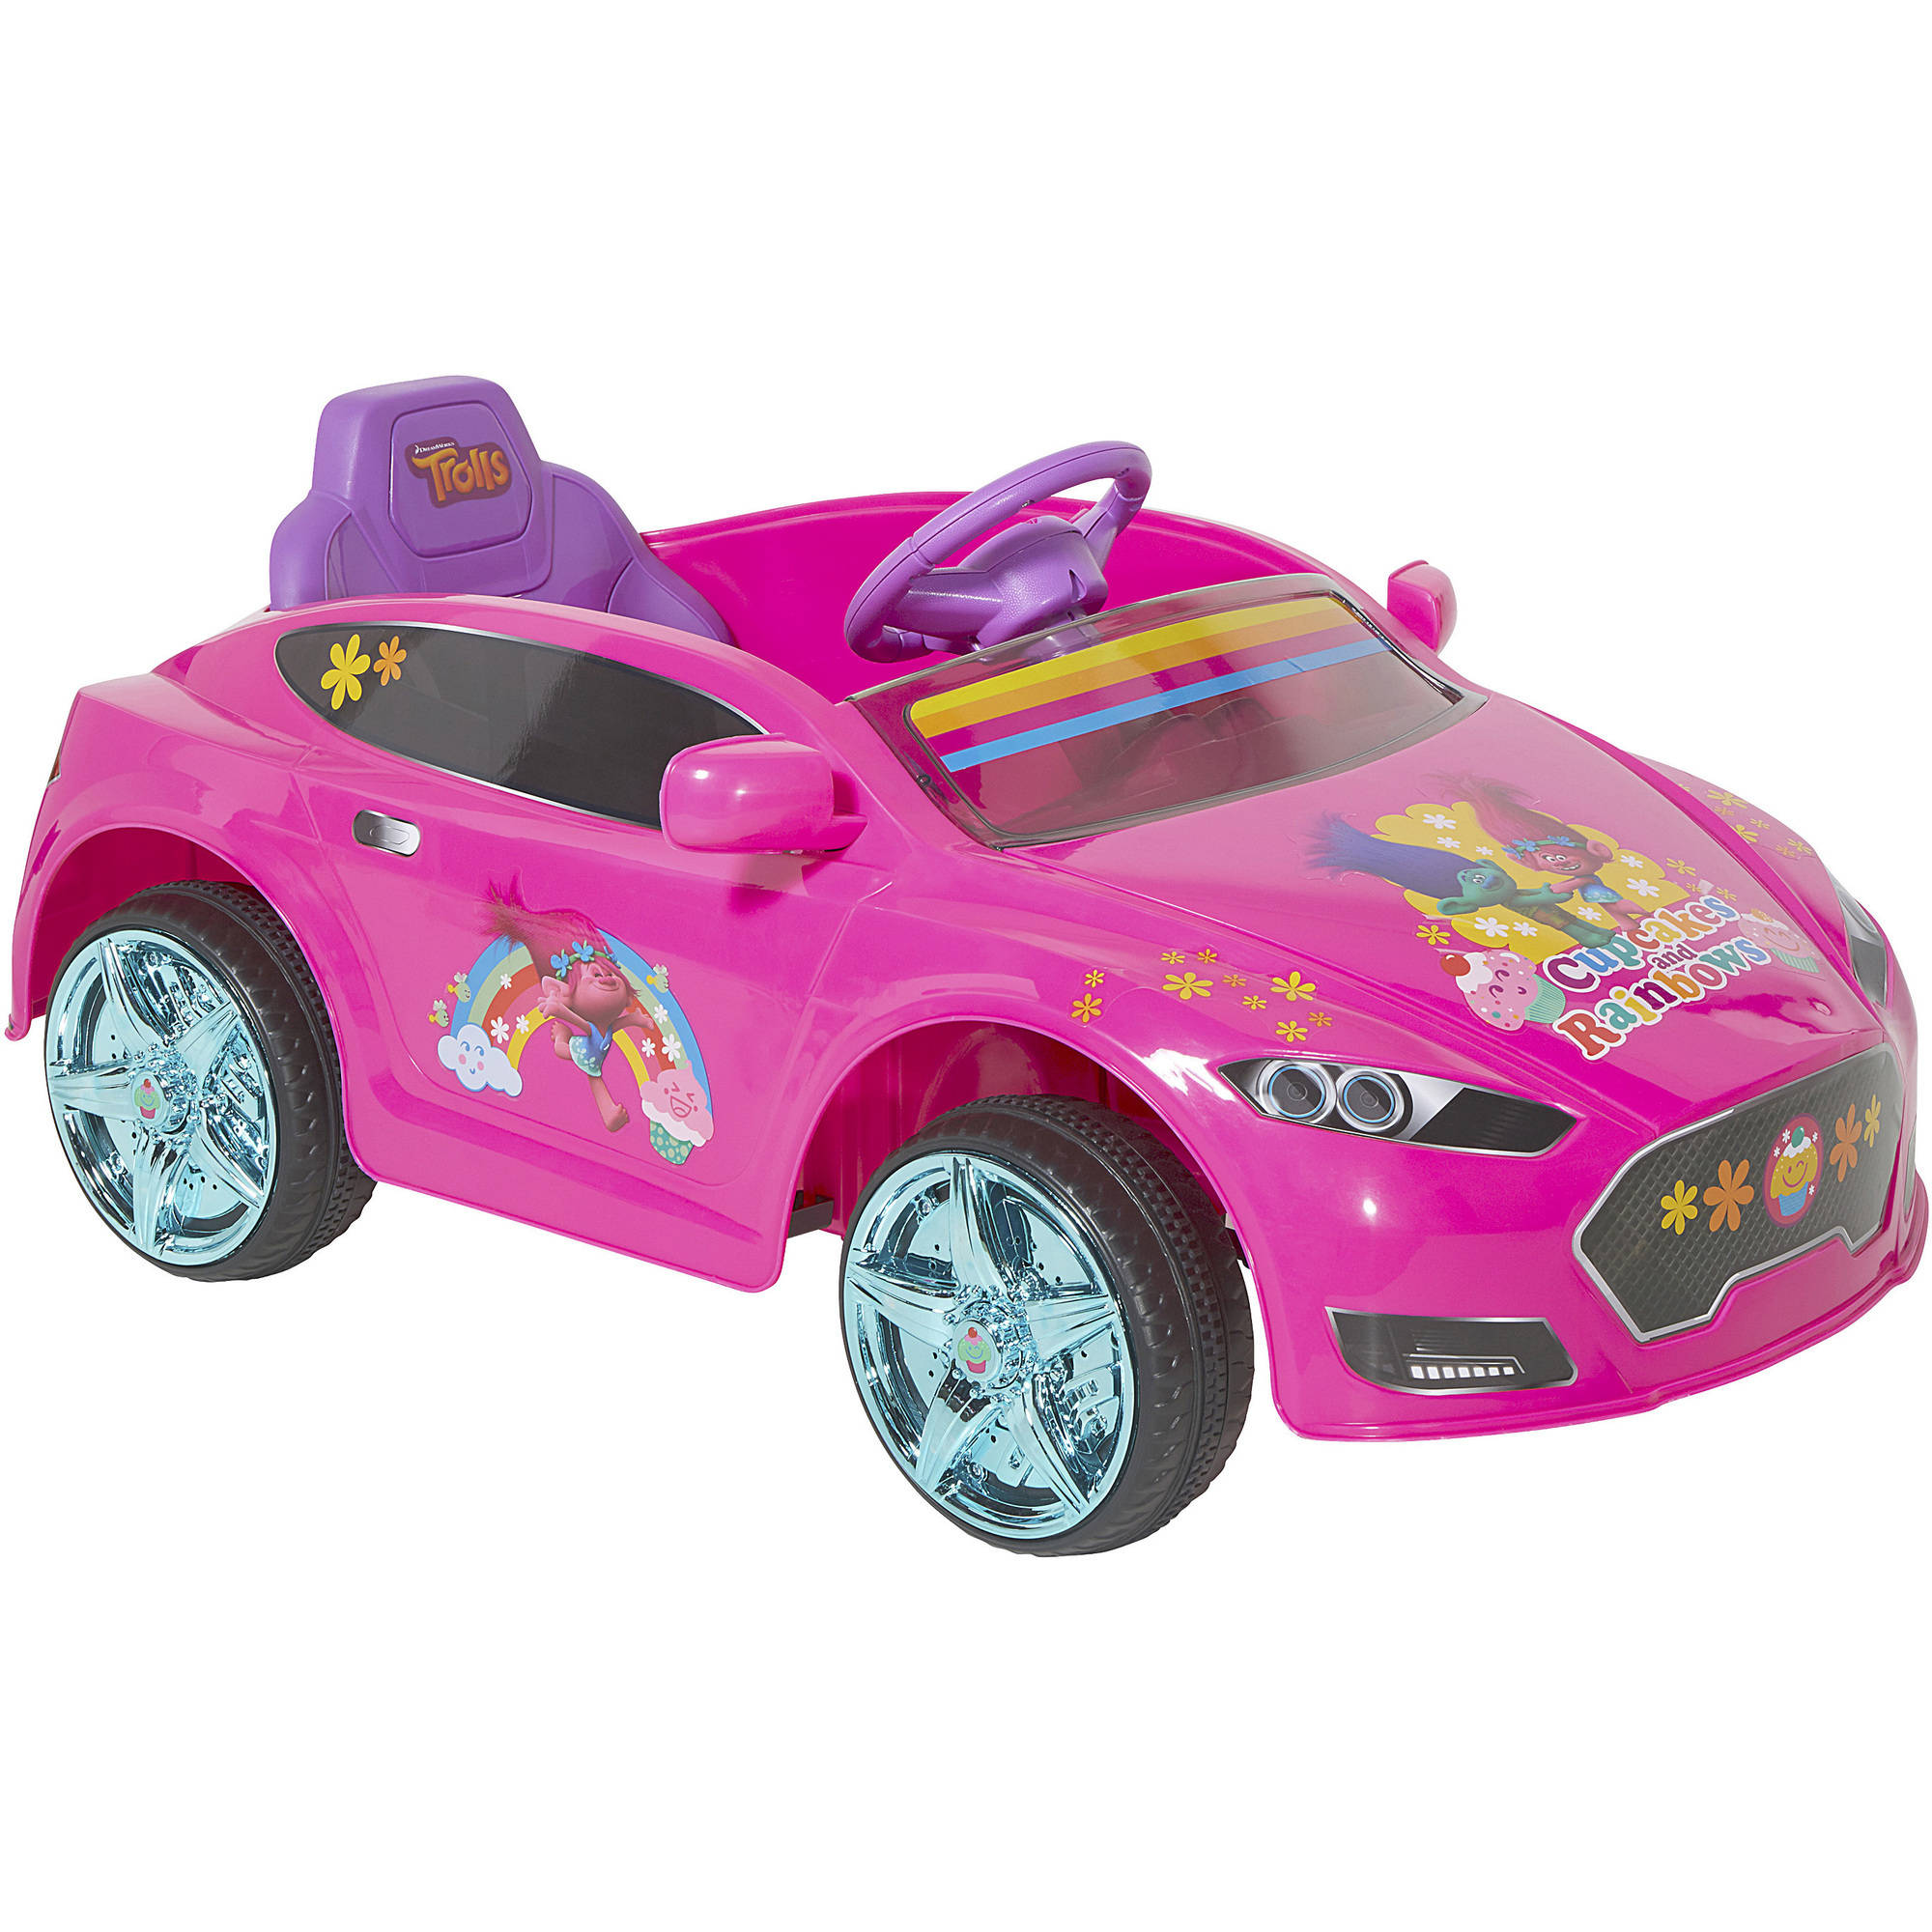 Trolls 6V Speed Electric Battery Powered Coupe Ride Walmart